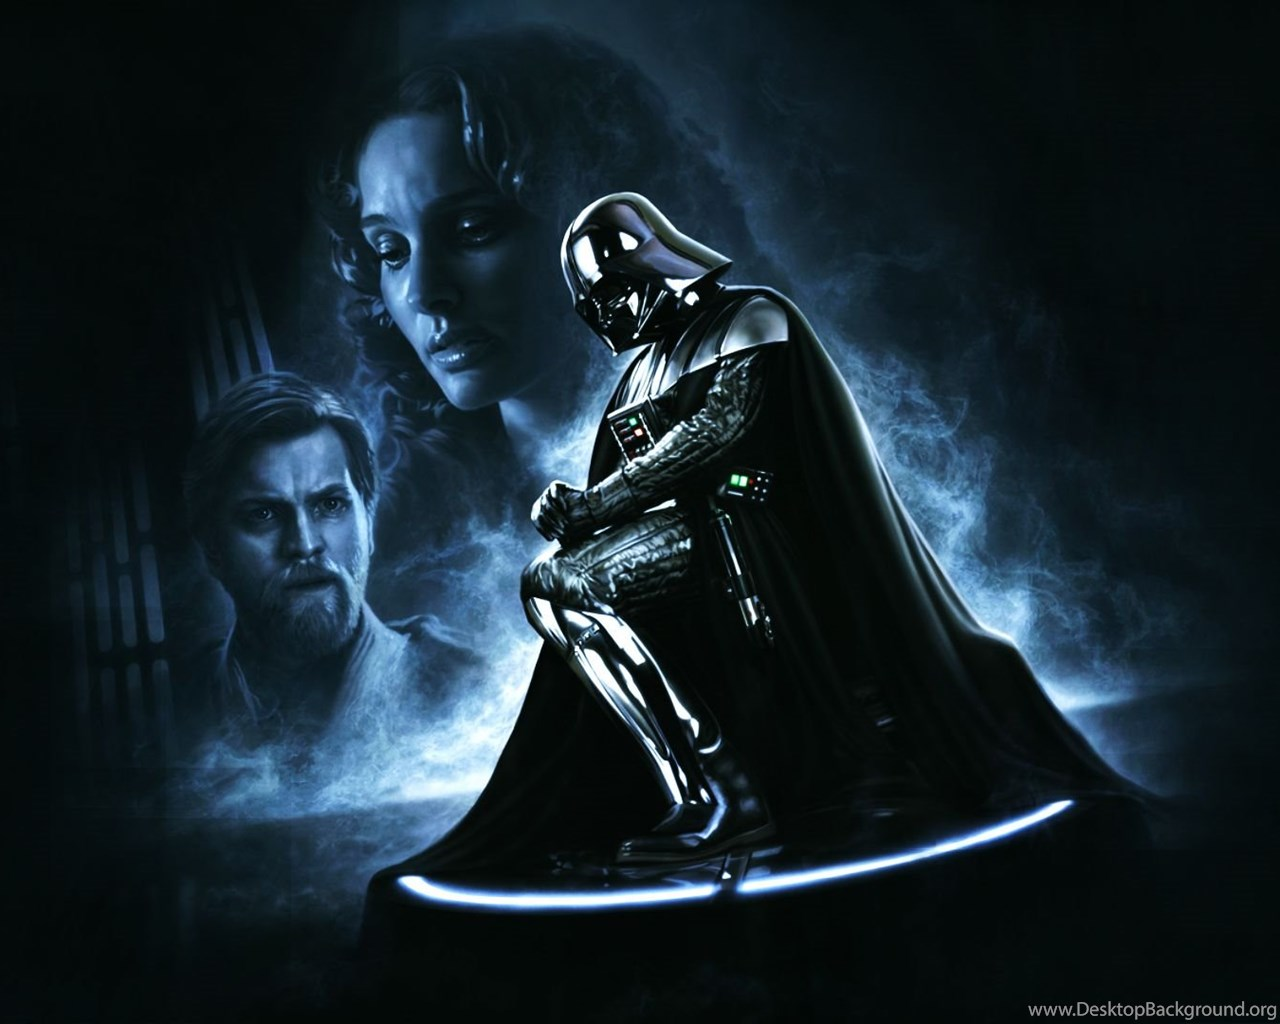 Darth Vader Wallpaper Iphone: 174 Darth Vader HD Wallpapers Desktop Background